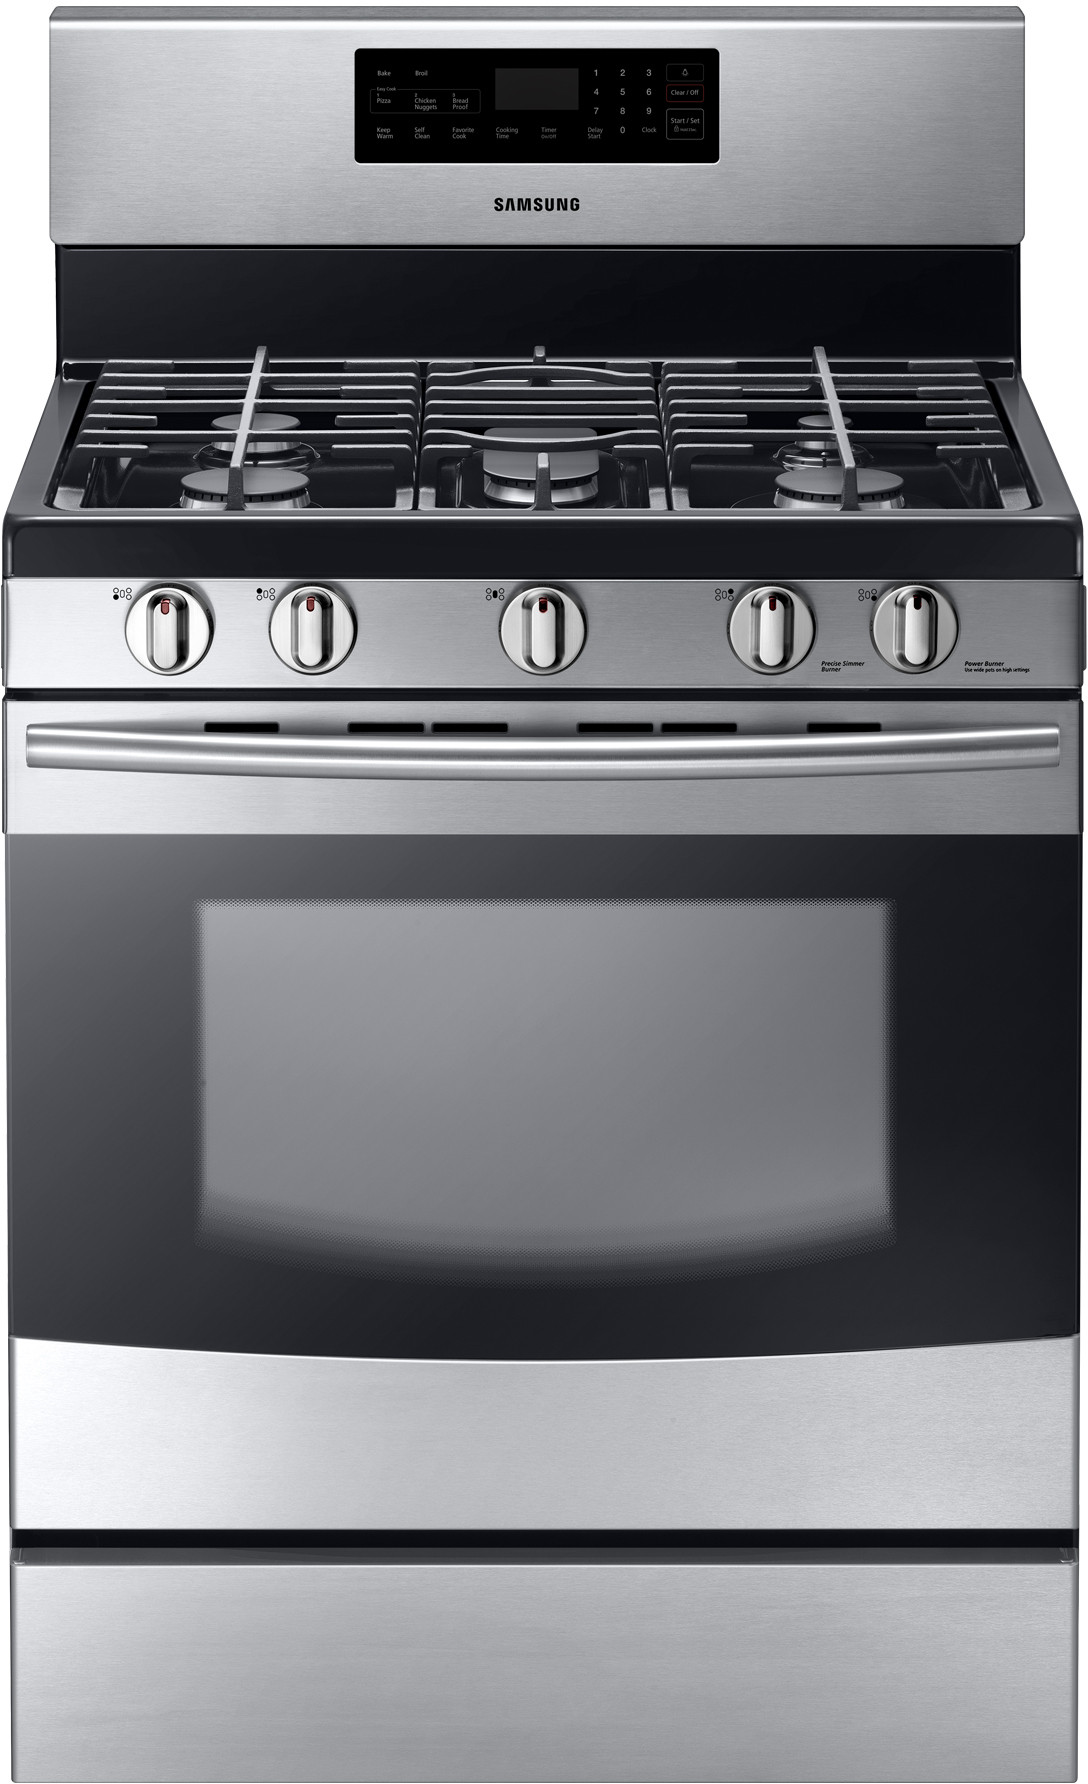 Cooktop Gas Stoves Samsung Nx58f5500ss 30 Inch Freestanding Gas Range With 5